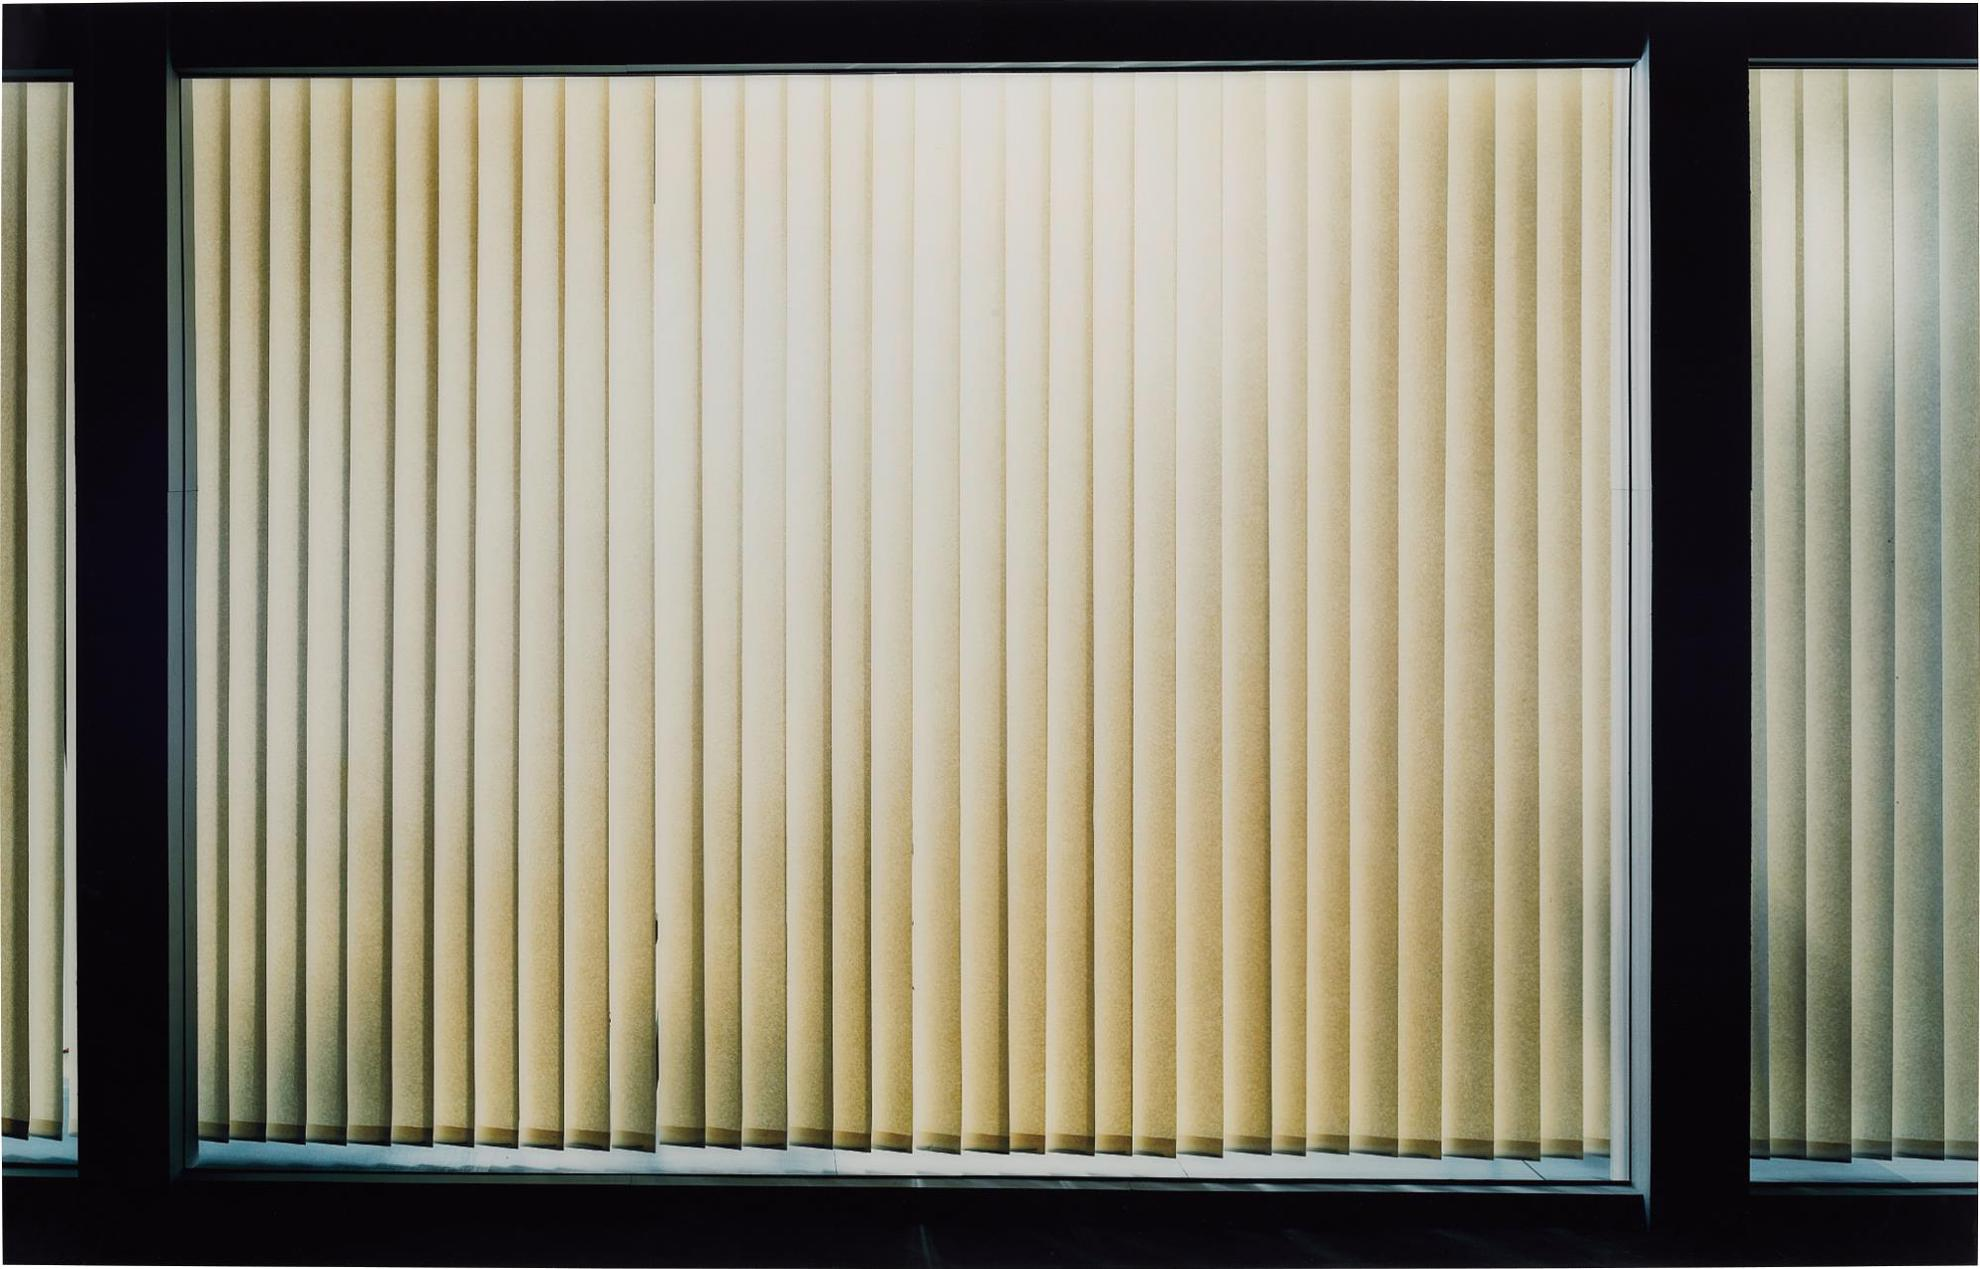 Thomas Demand-Fenster-1998